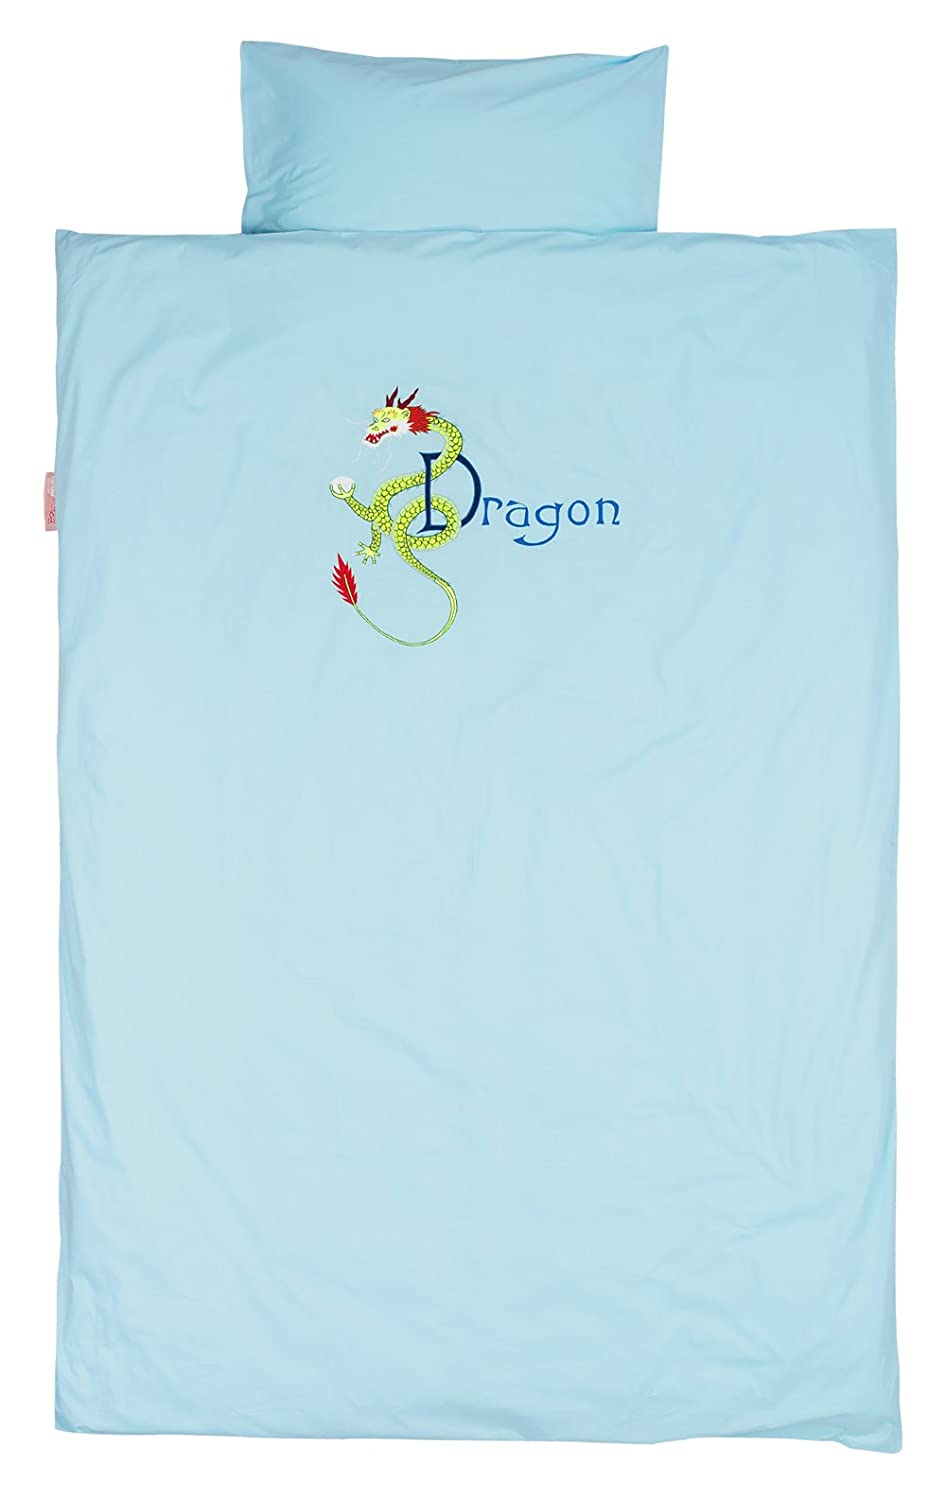 Taftan Dragon Duvet Cover Set 100 x 135cm for Cot (Turquoise) DS-280